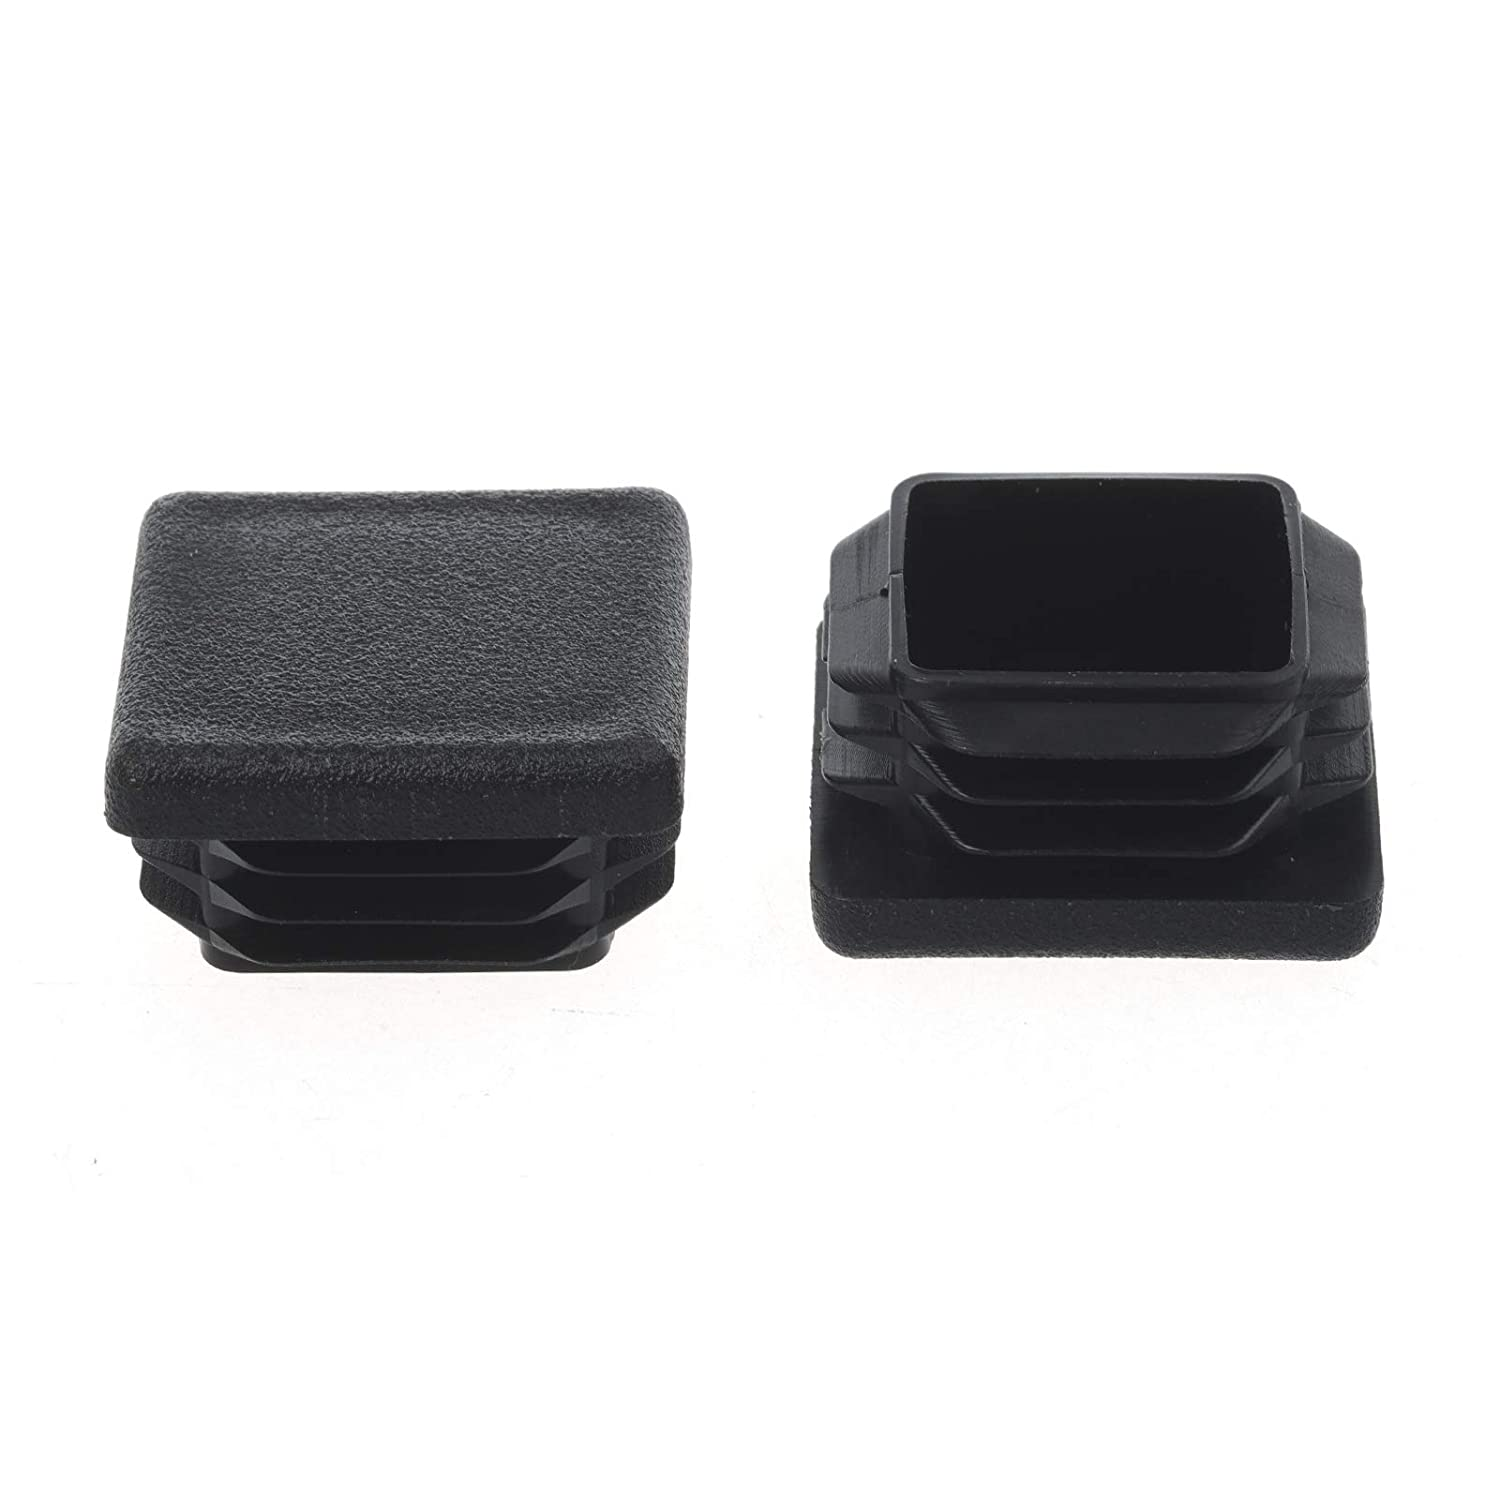 1-1/2Inch Square Plastic Plug, End Caps for Tubing Pipe OD 1-1/2